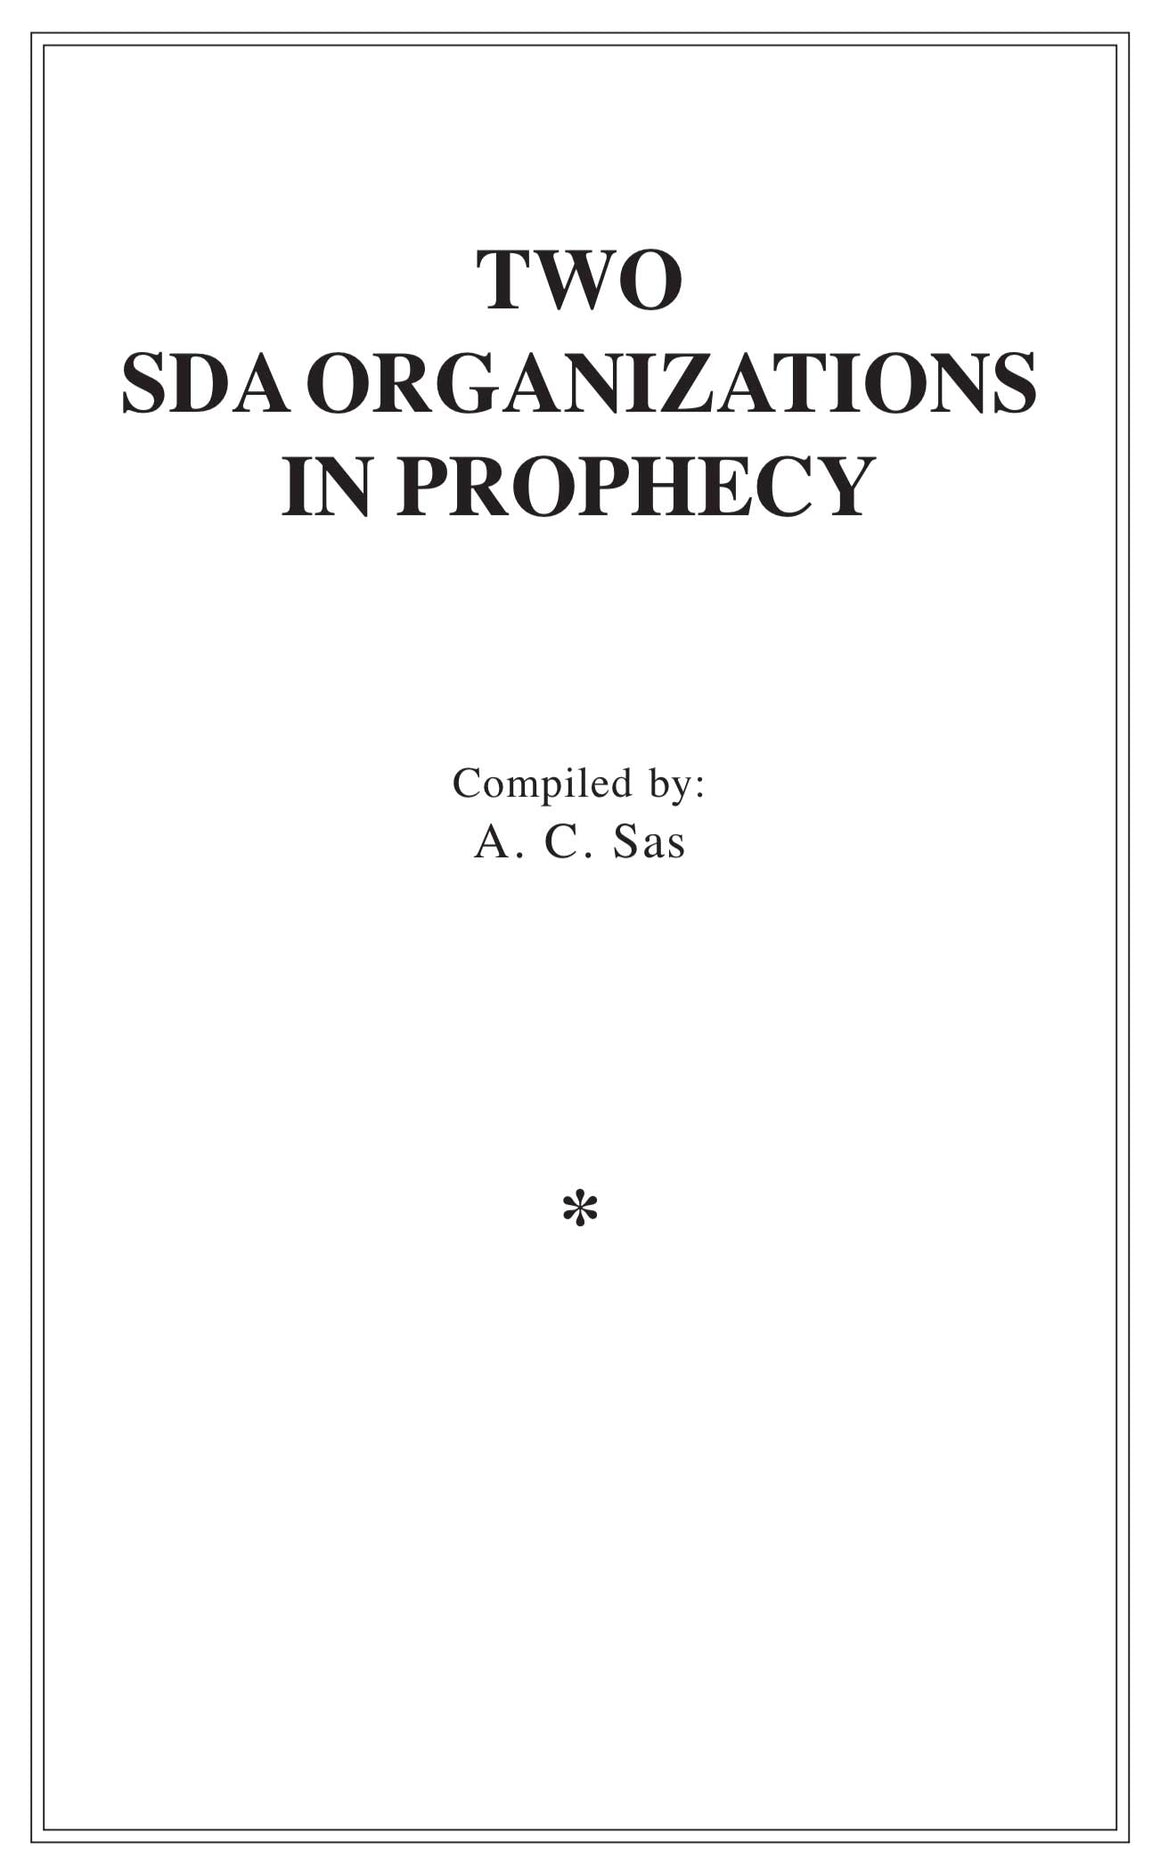 Two SDA Organizations in Prophecy